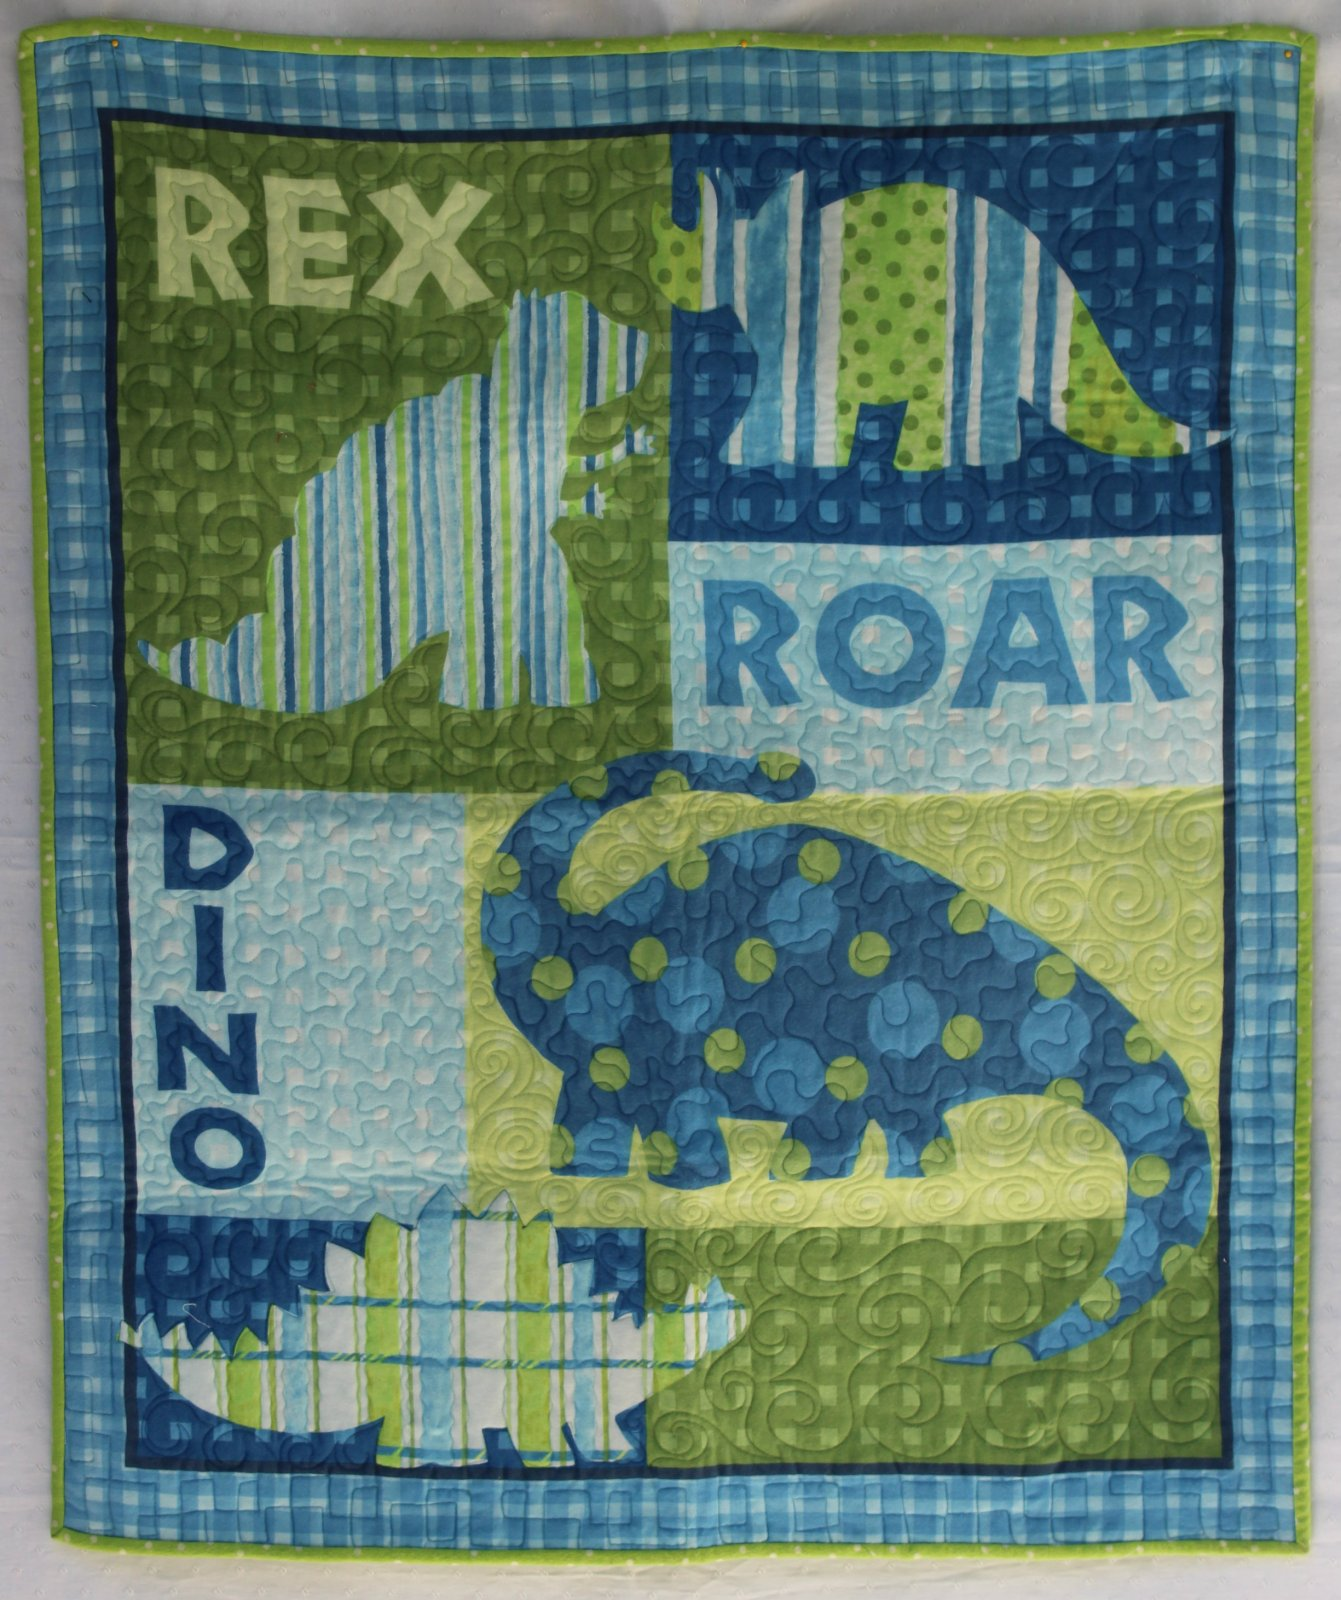 Flannel Dino Rex Roar - kit